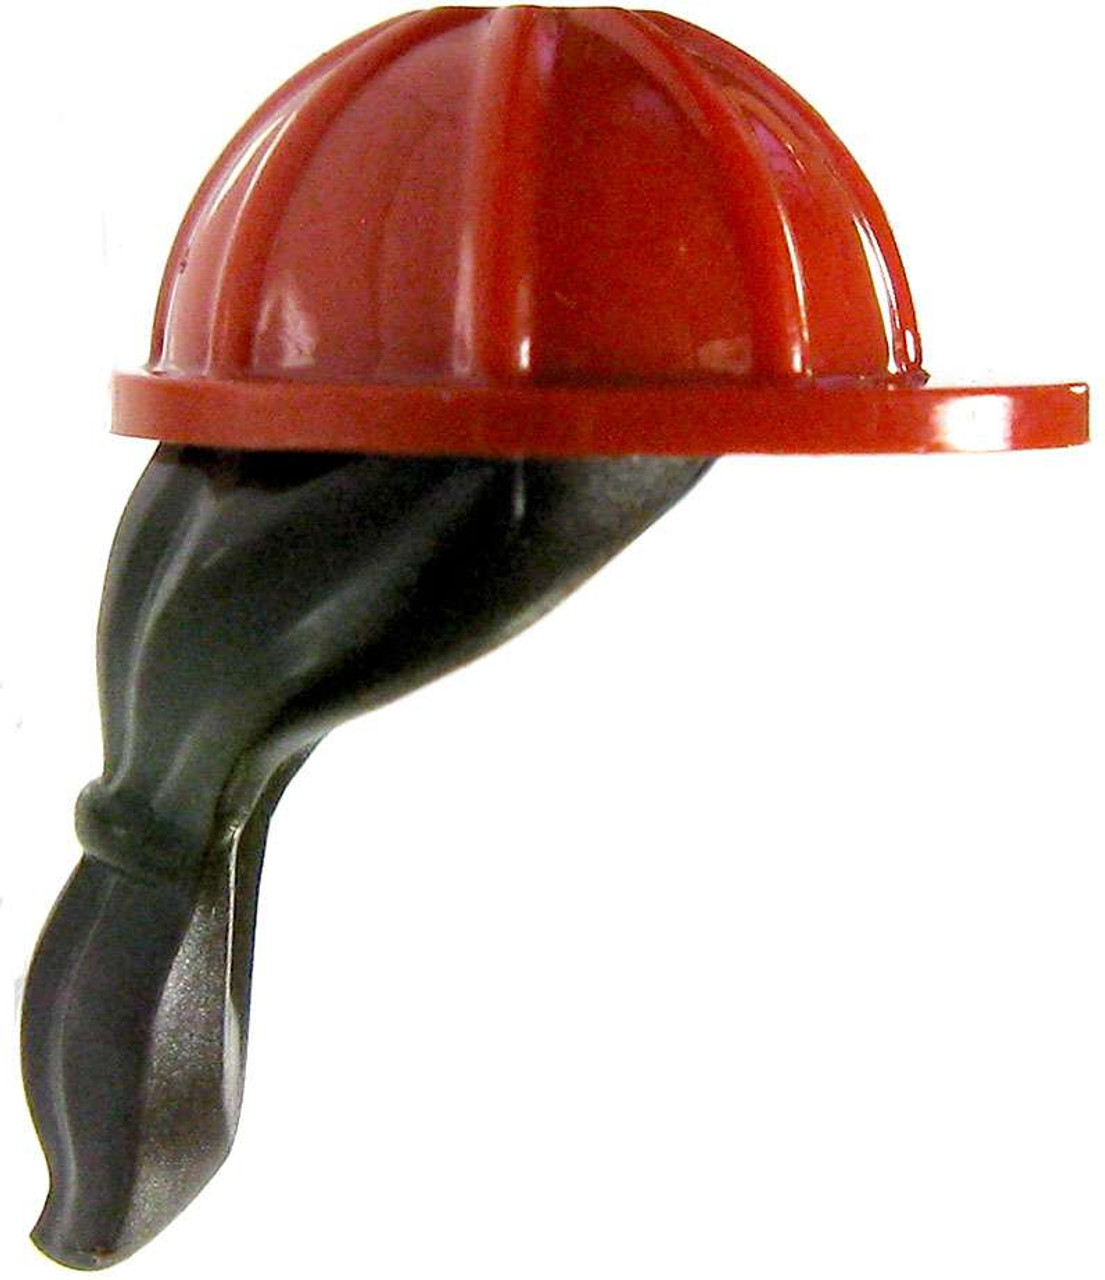 LEGO LEGO Minifigure Parts Red Hard Hat with Brown Ponytail Loose - ToyWiz b63b9038d4f1